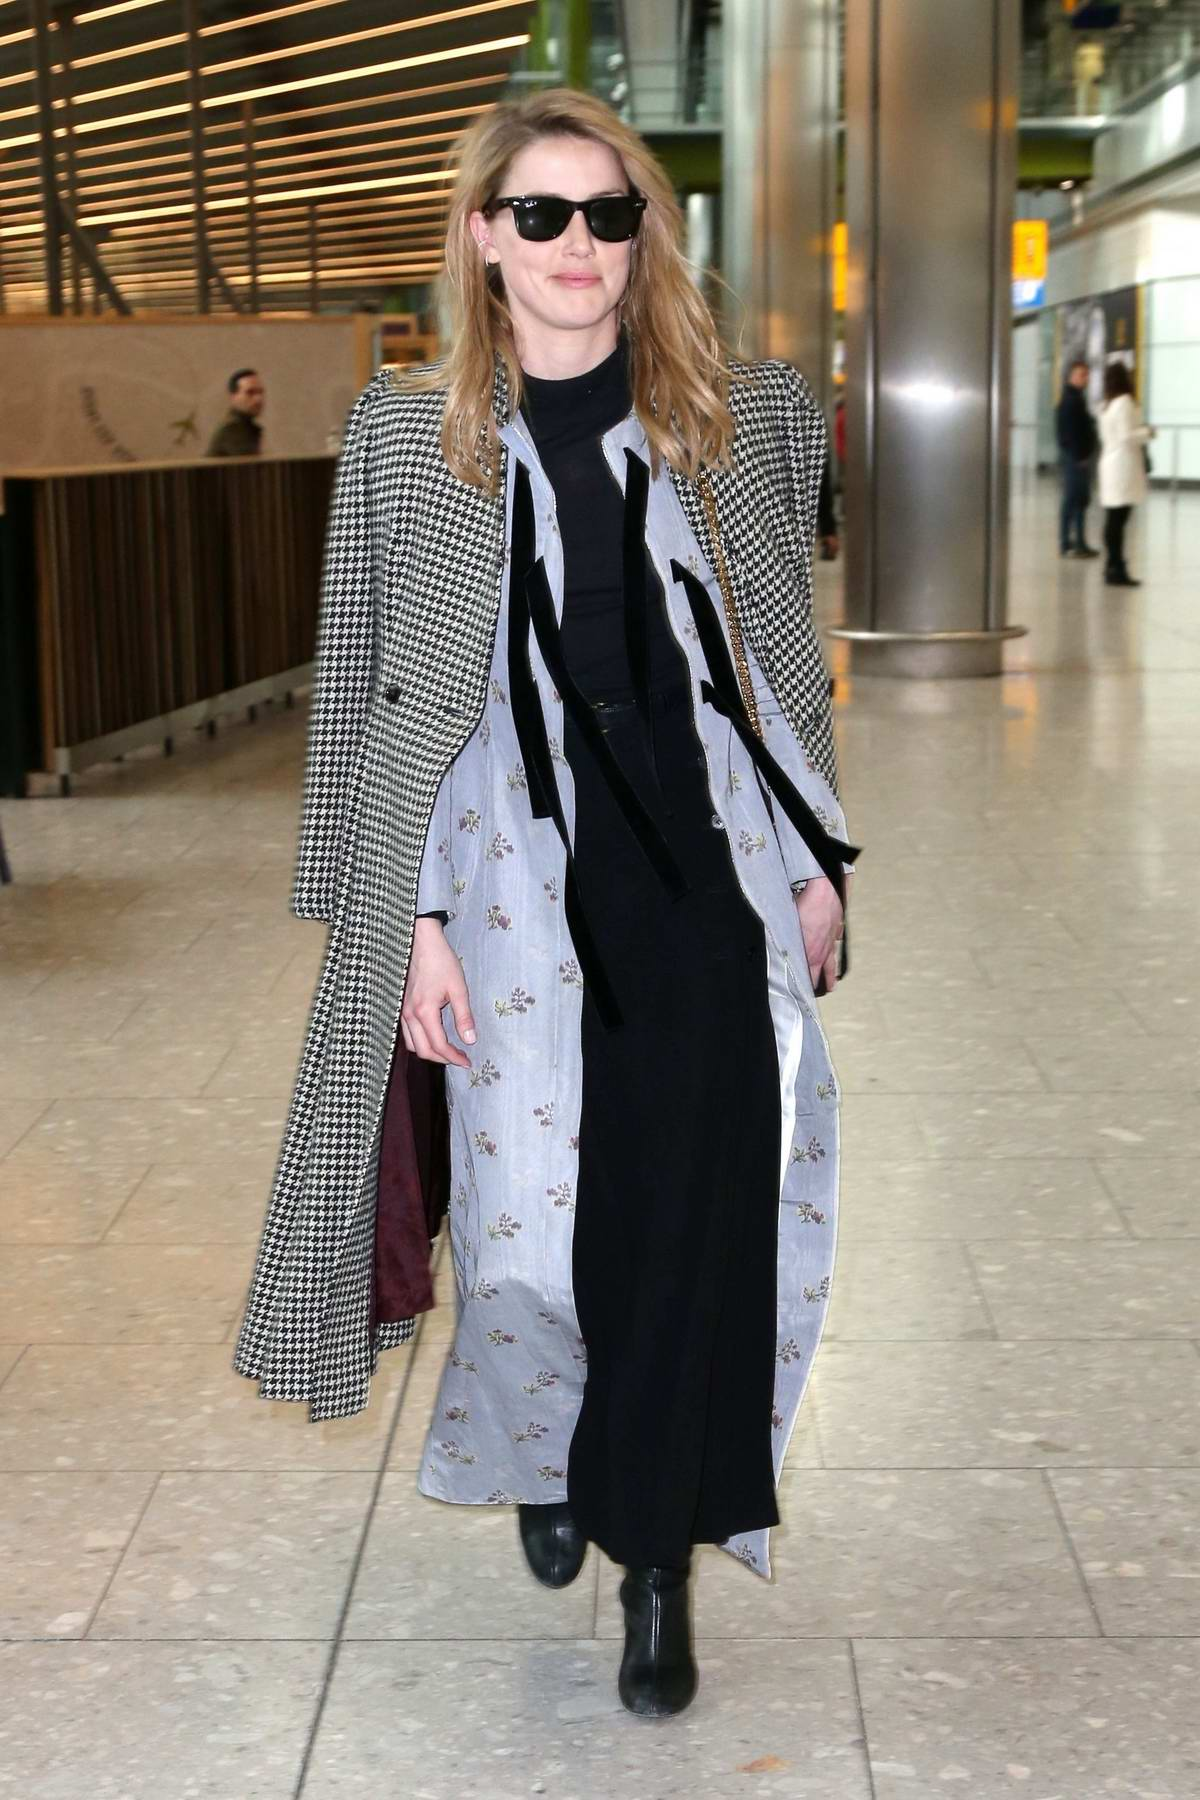 Amber Heard looks classy as she arrives at the Heathrow Airport in London, UK